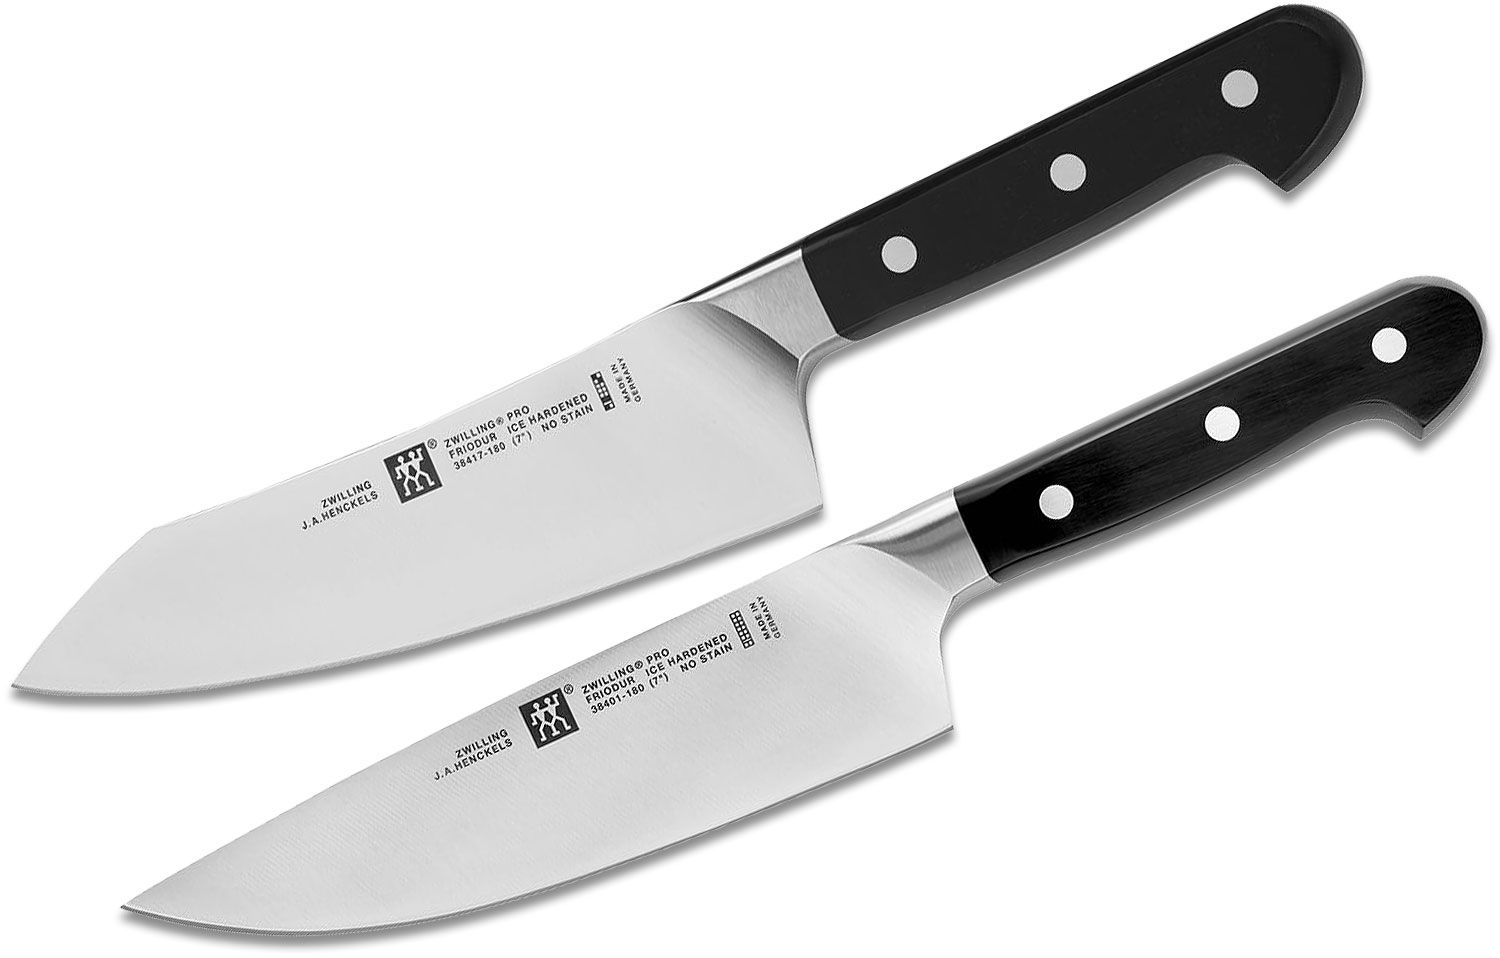 Zwilling J.A. Henckels Pro Perfect Pair 2-Piece Knife Set, 7 inch Rocking Santoku and Chef's Knives